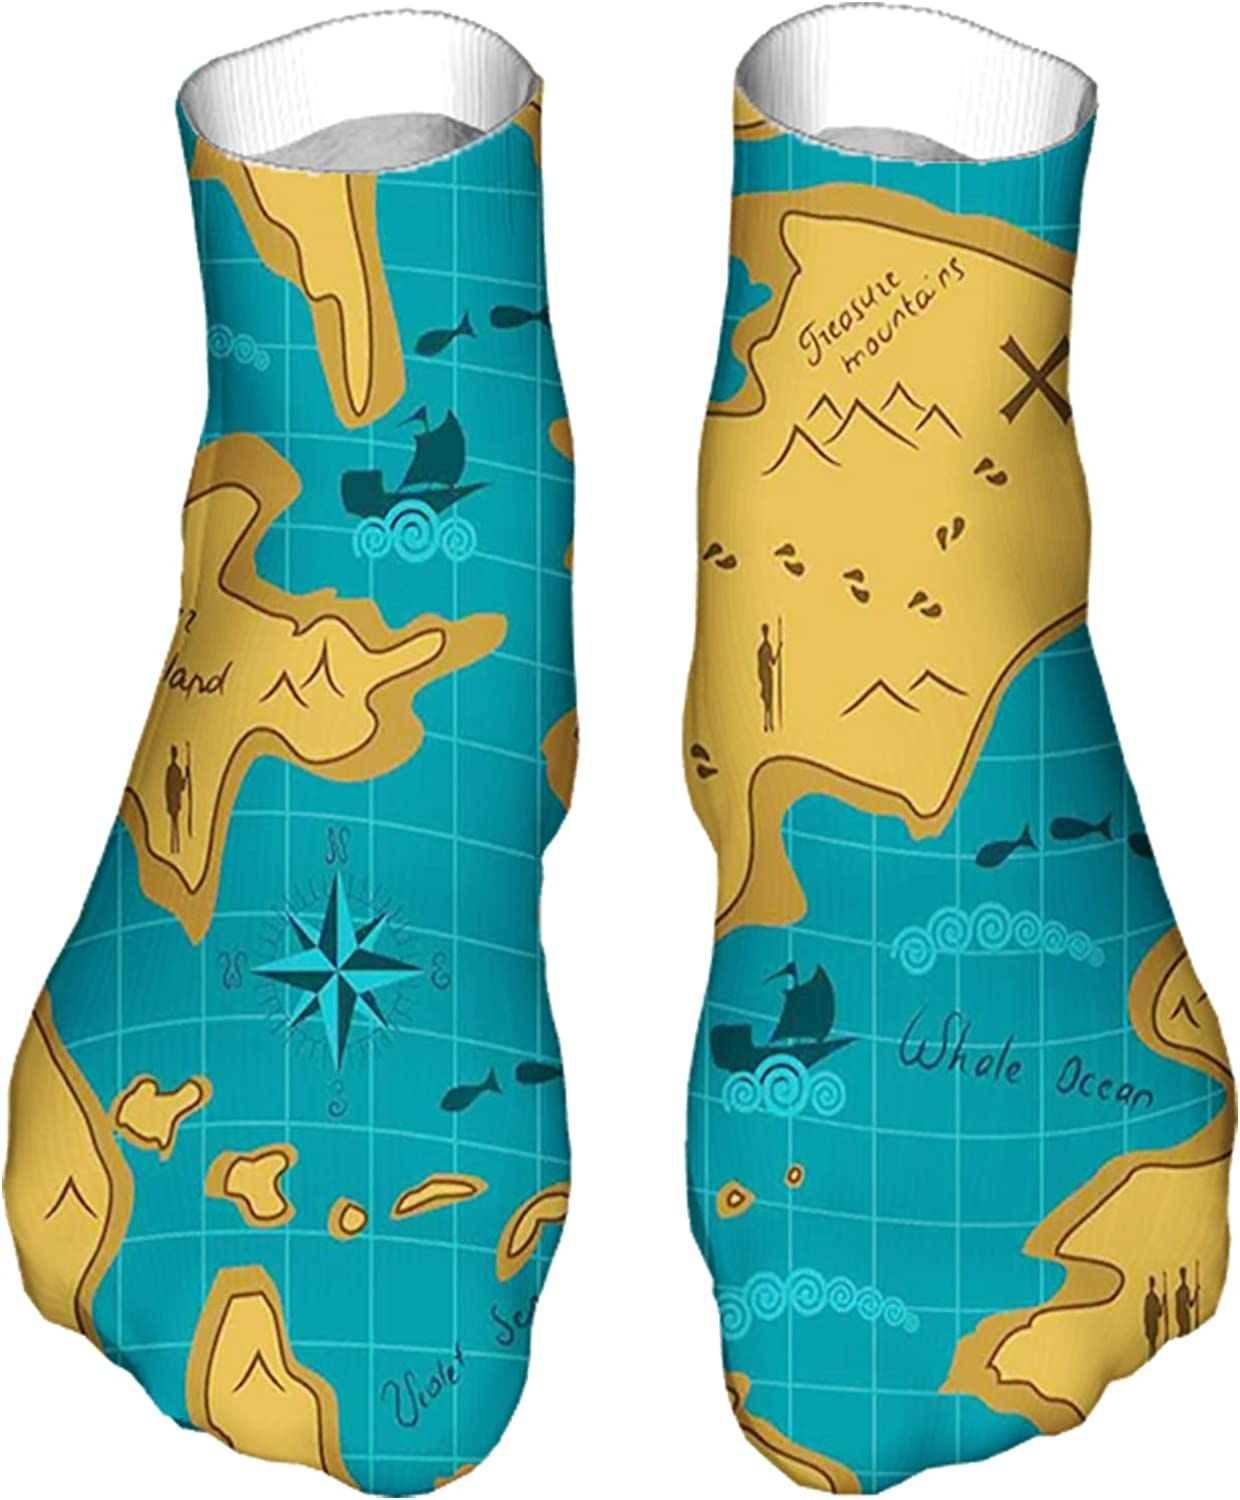 Men's and Women's Funny Casual Socks Historical Adventure Map Pattern with Sail Boats Direction